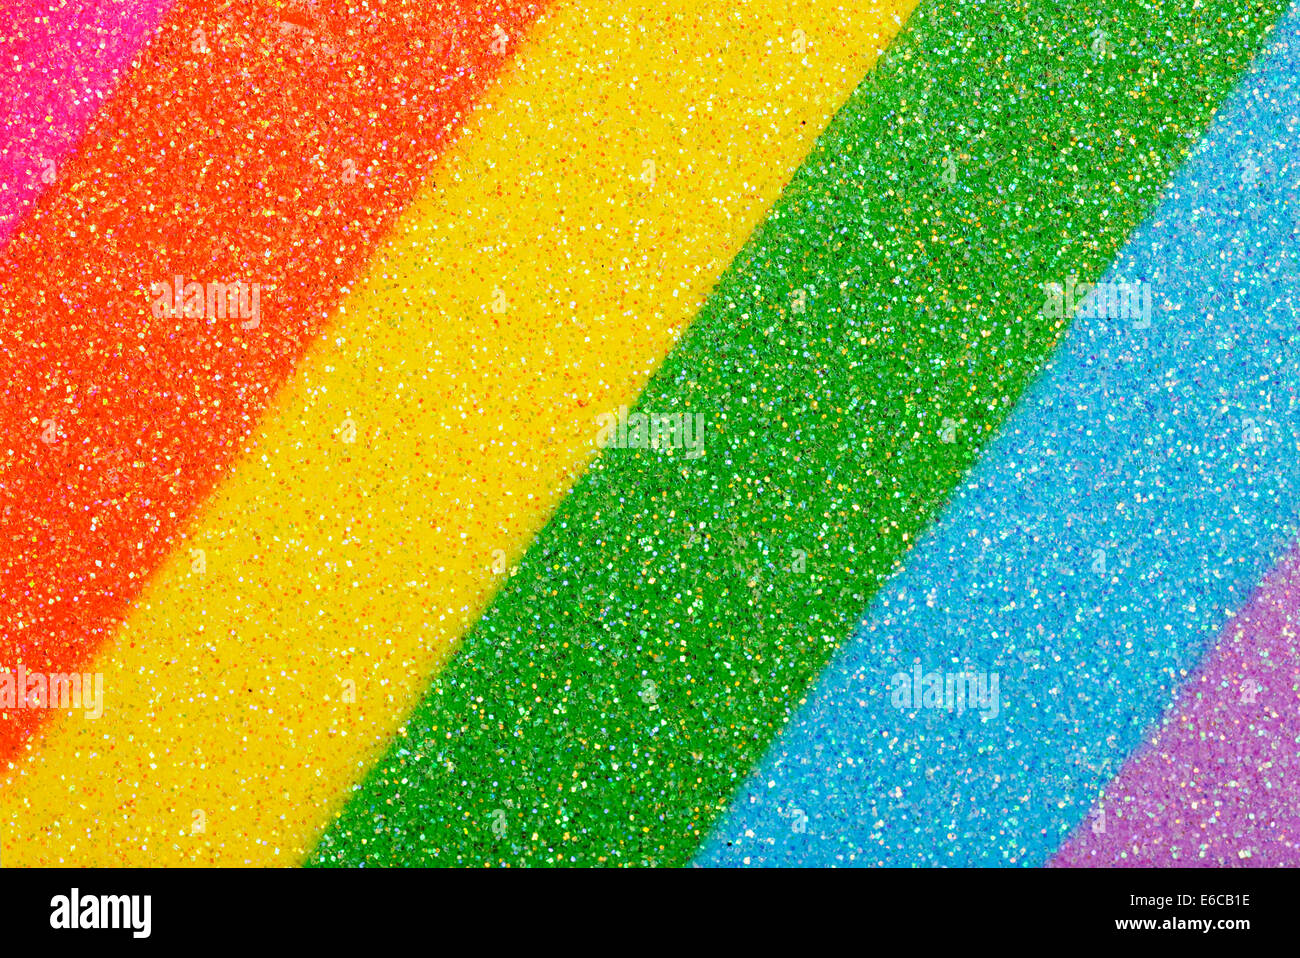 Rainbow colors, close-up - Stock Image